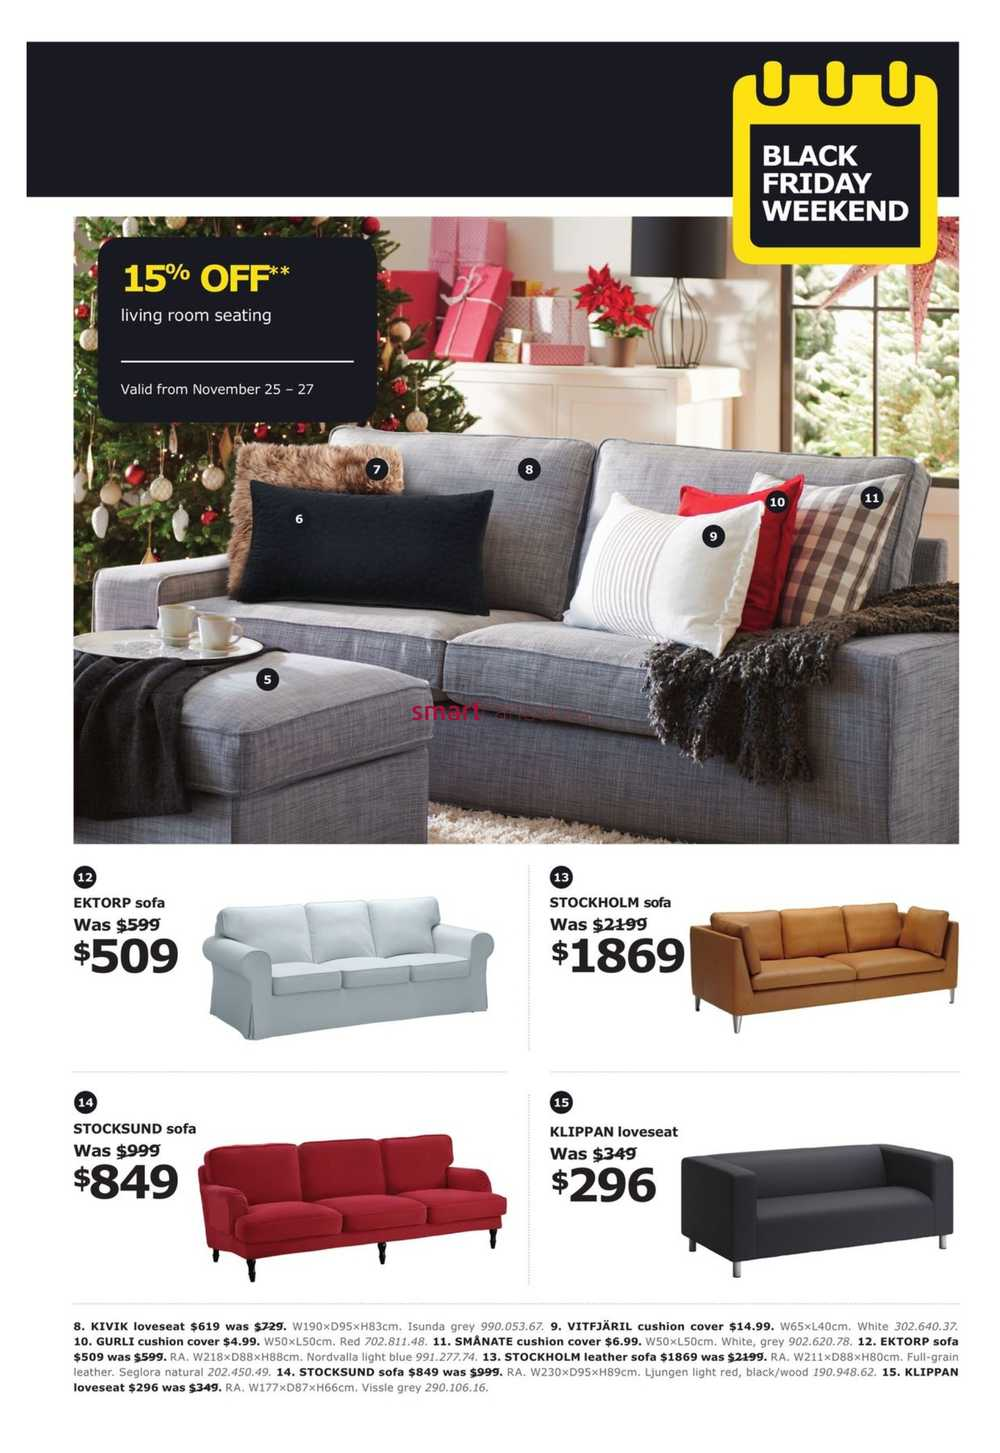 ikea black friday weekend flyer november 25 to 27. Black Bedroom Furniture Sets. Home Design Ideas